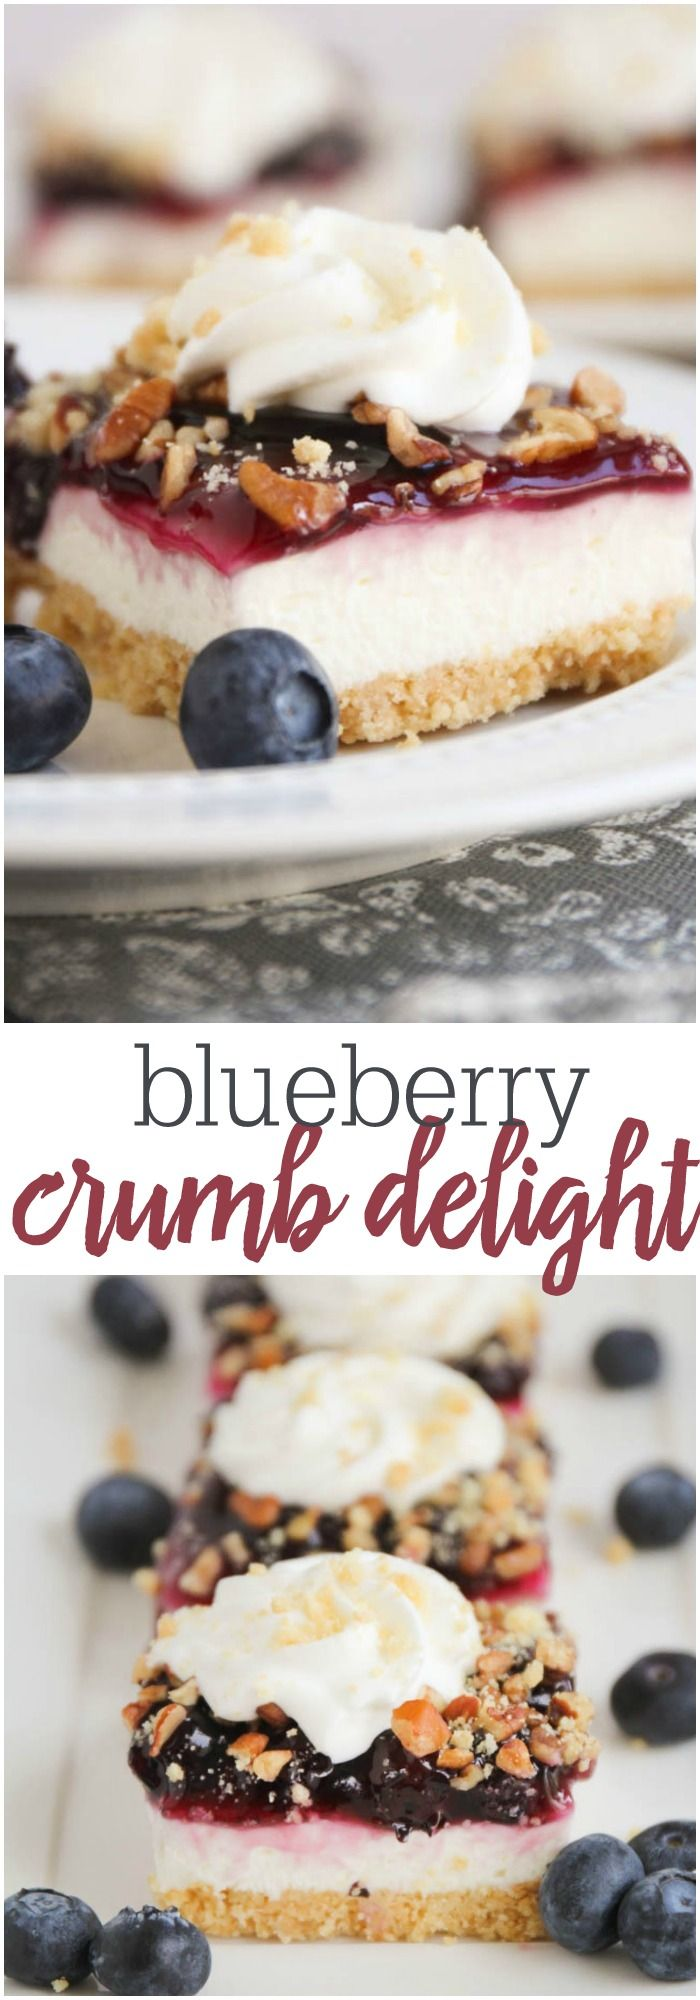 Blueberry Crumb Delight - a delicious layered dessert recipe with a cream middle and topped with blueberries and cool whip!